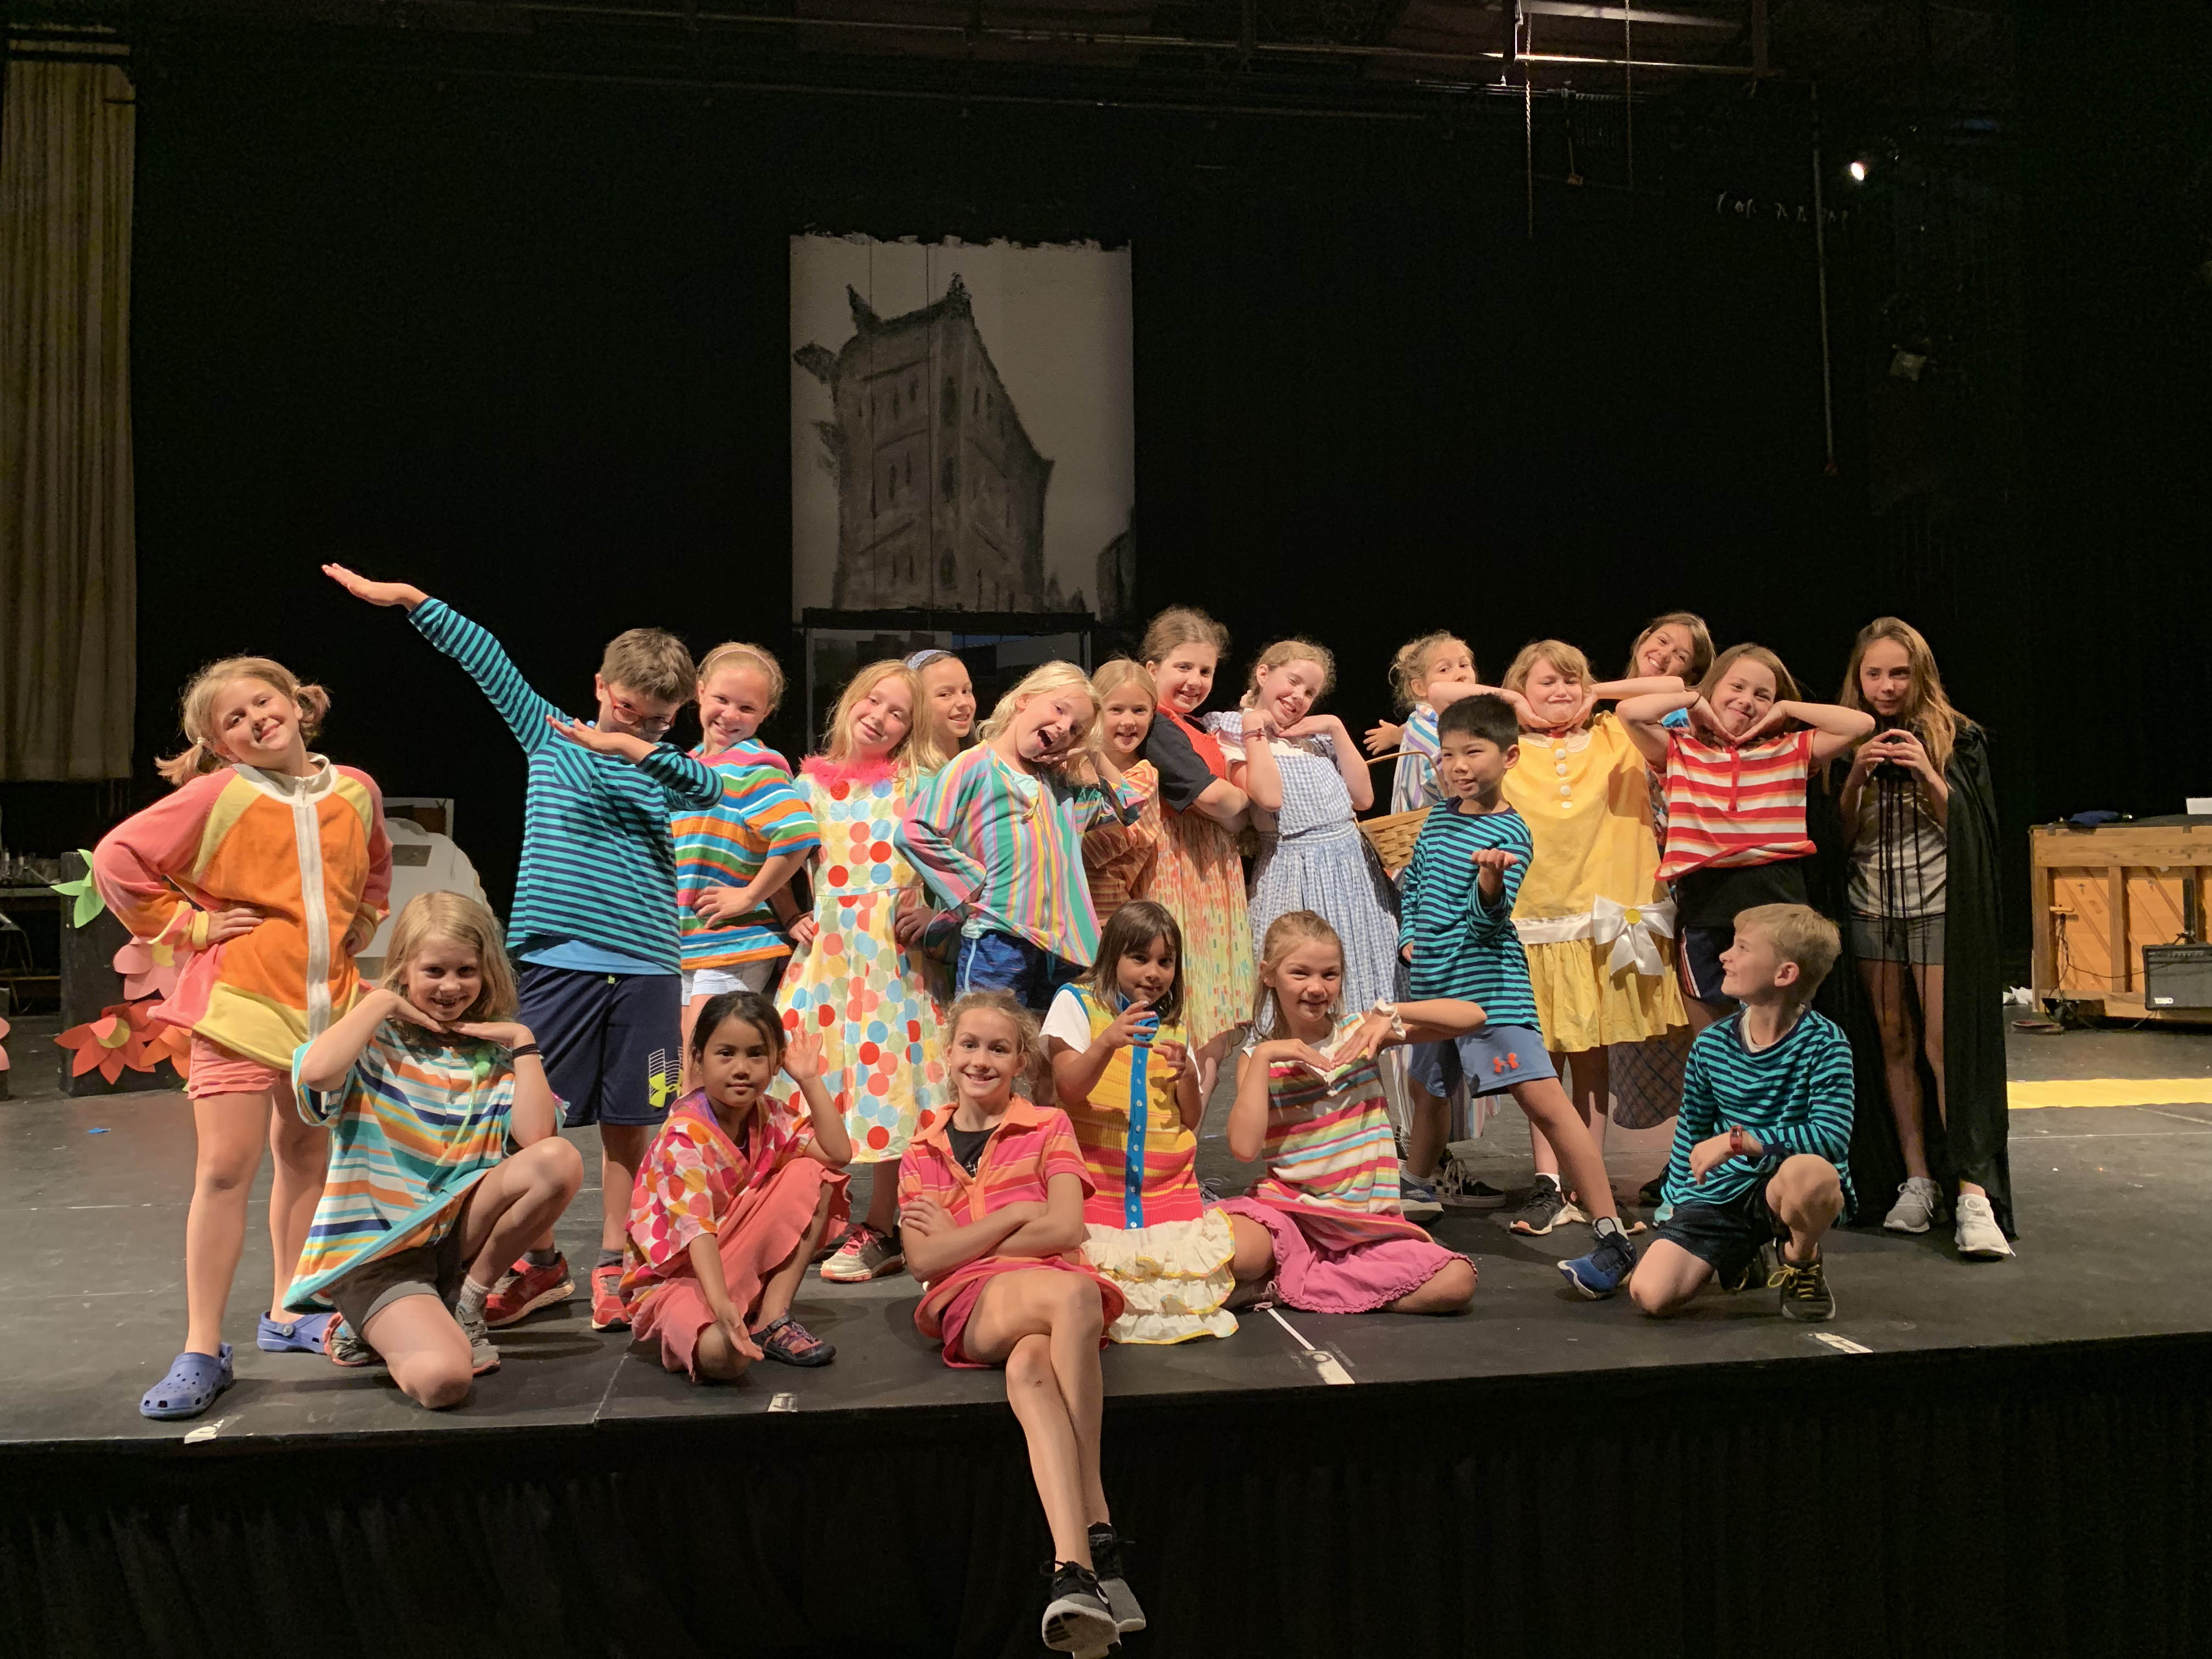 Students in theater camp pose for a photo on the Vis stage